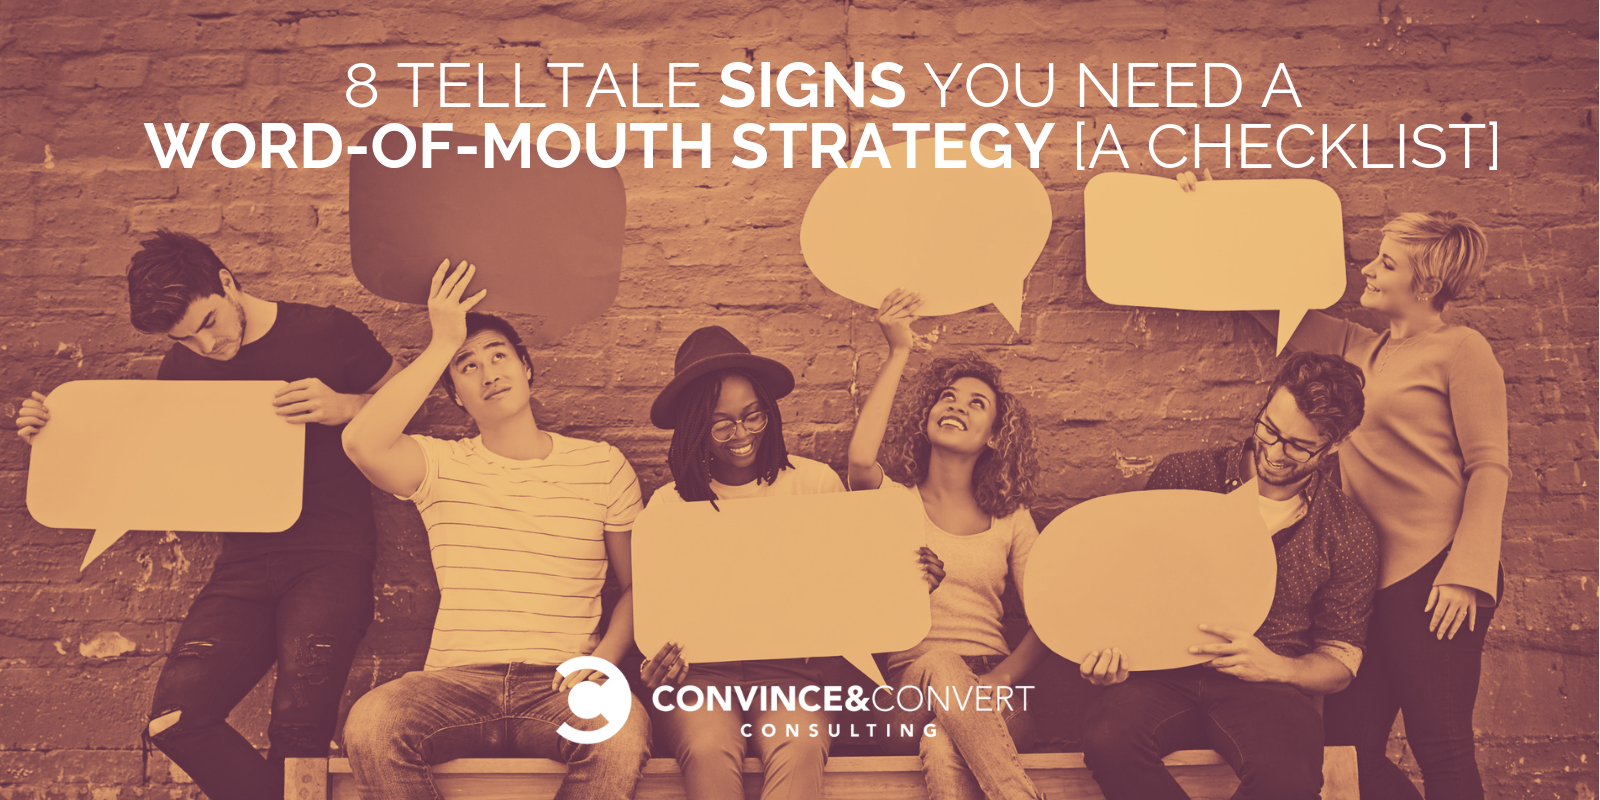 8 Telltale Signs You Need a Word-of-Mouth Strategy [A Checklist]